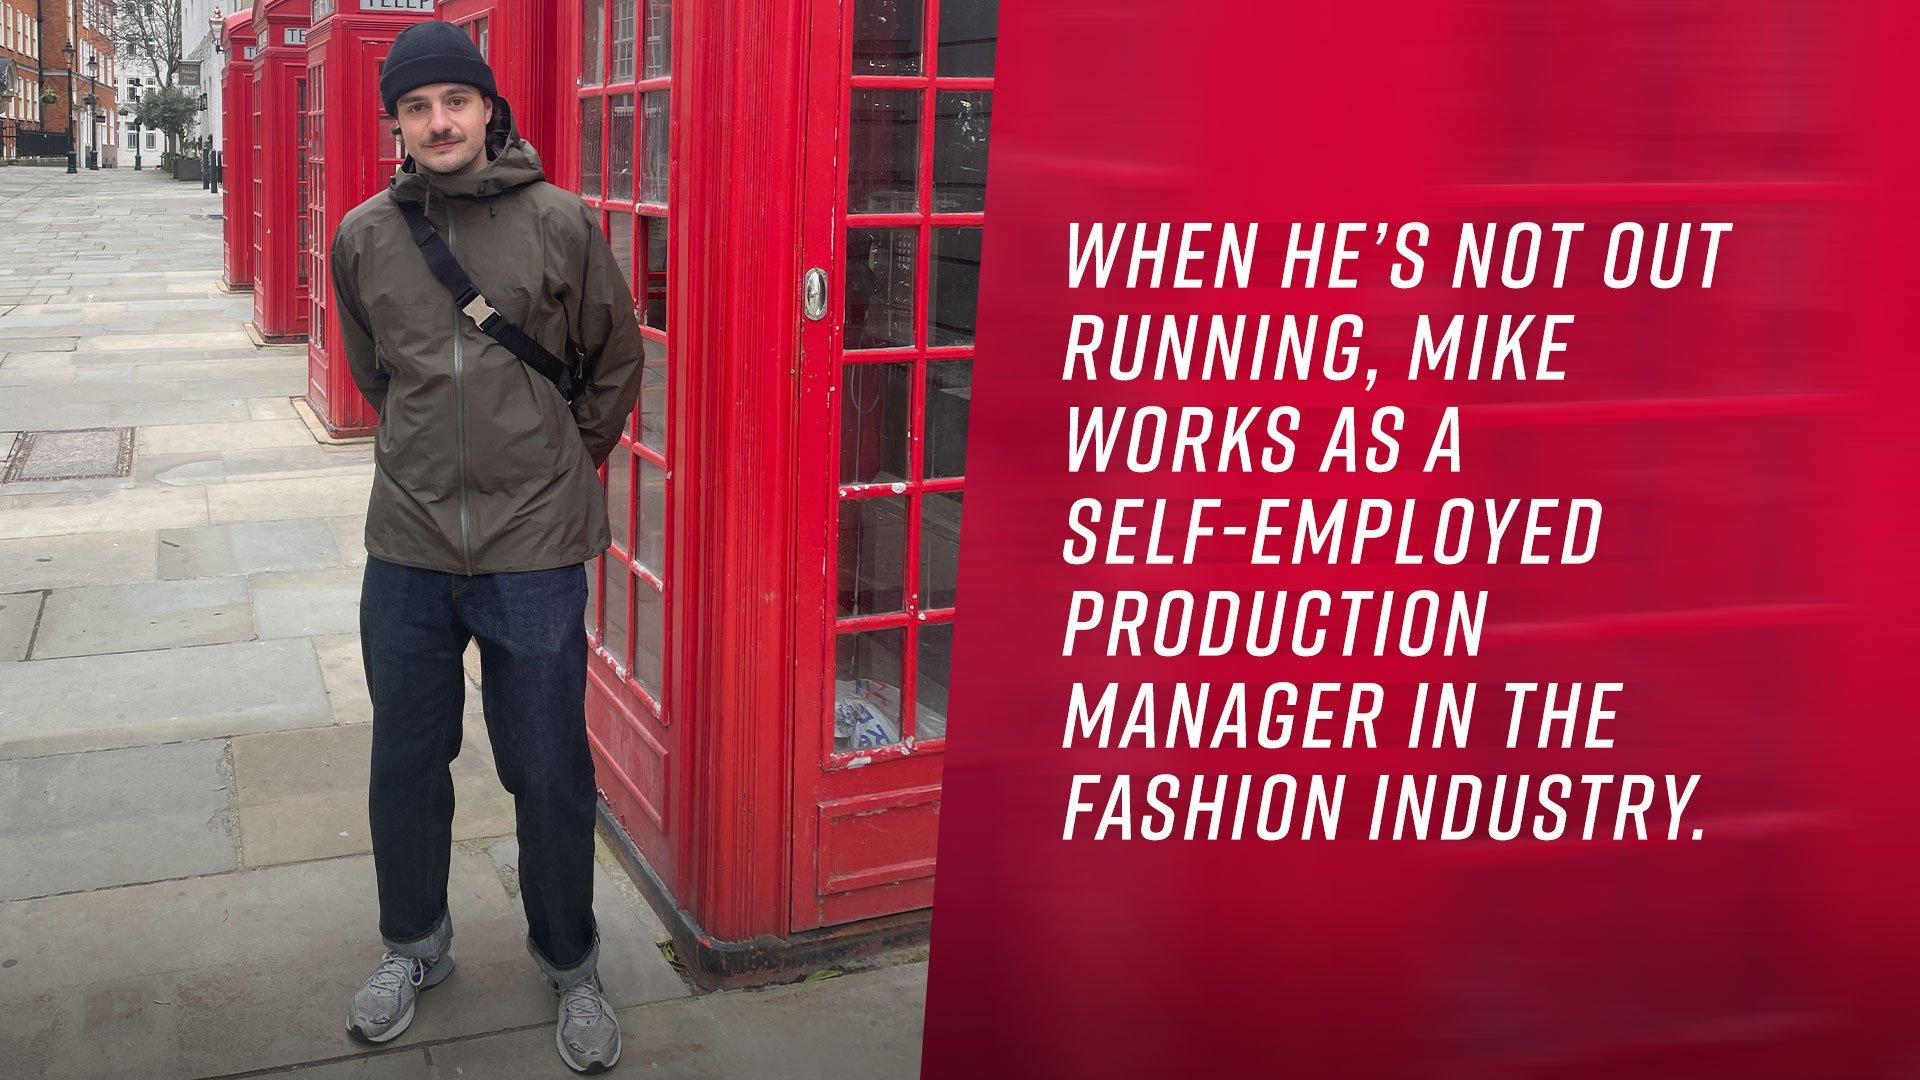 When he's not out running, Mike works as a self-employed Production Manager in the fashion industry.